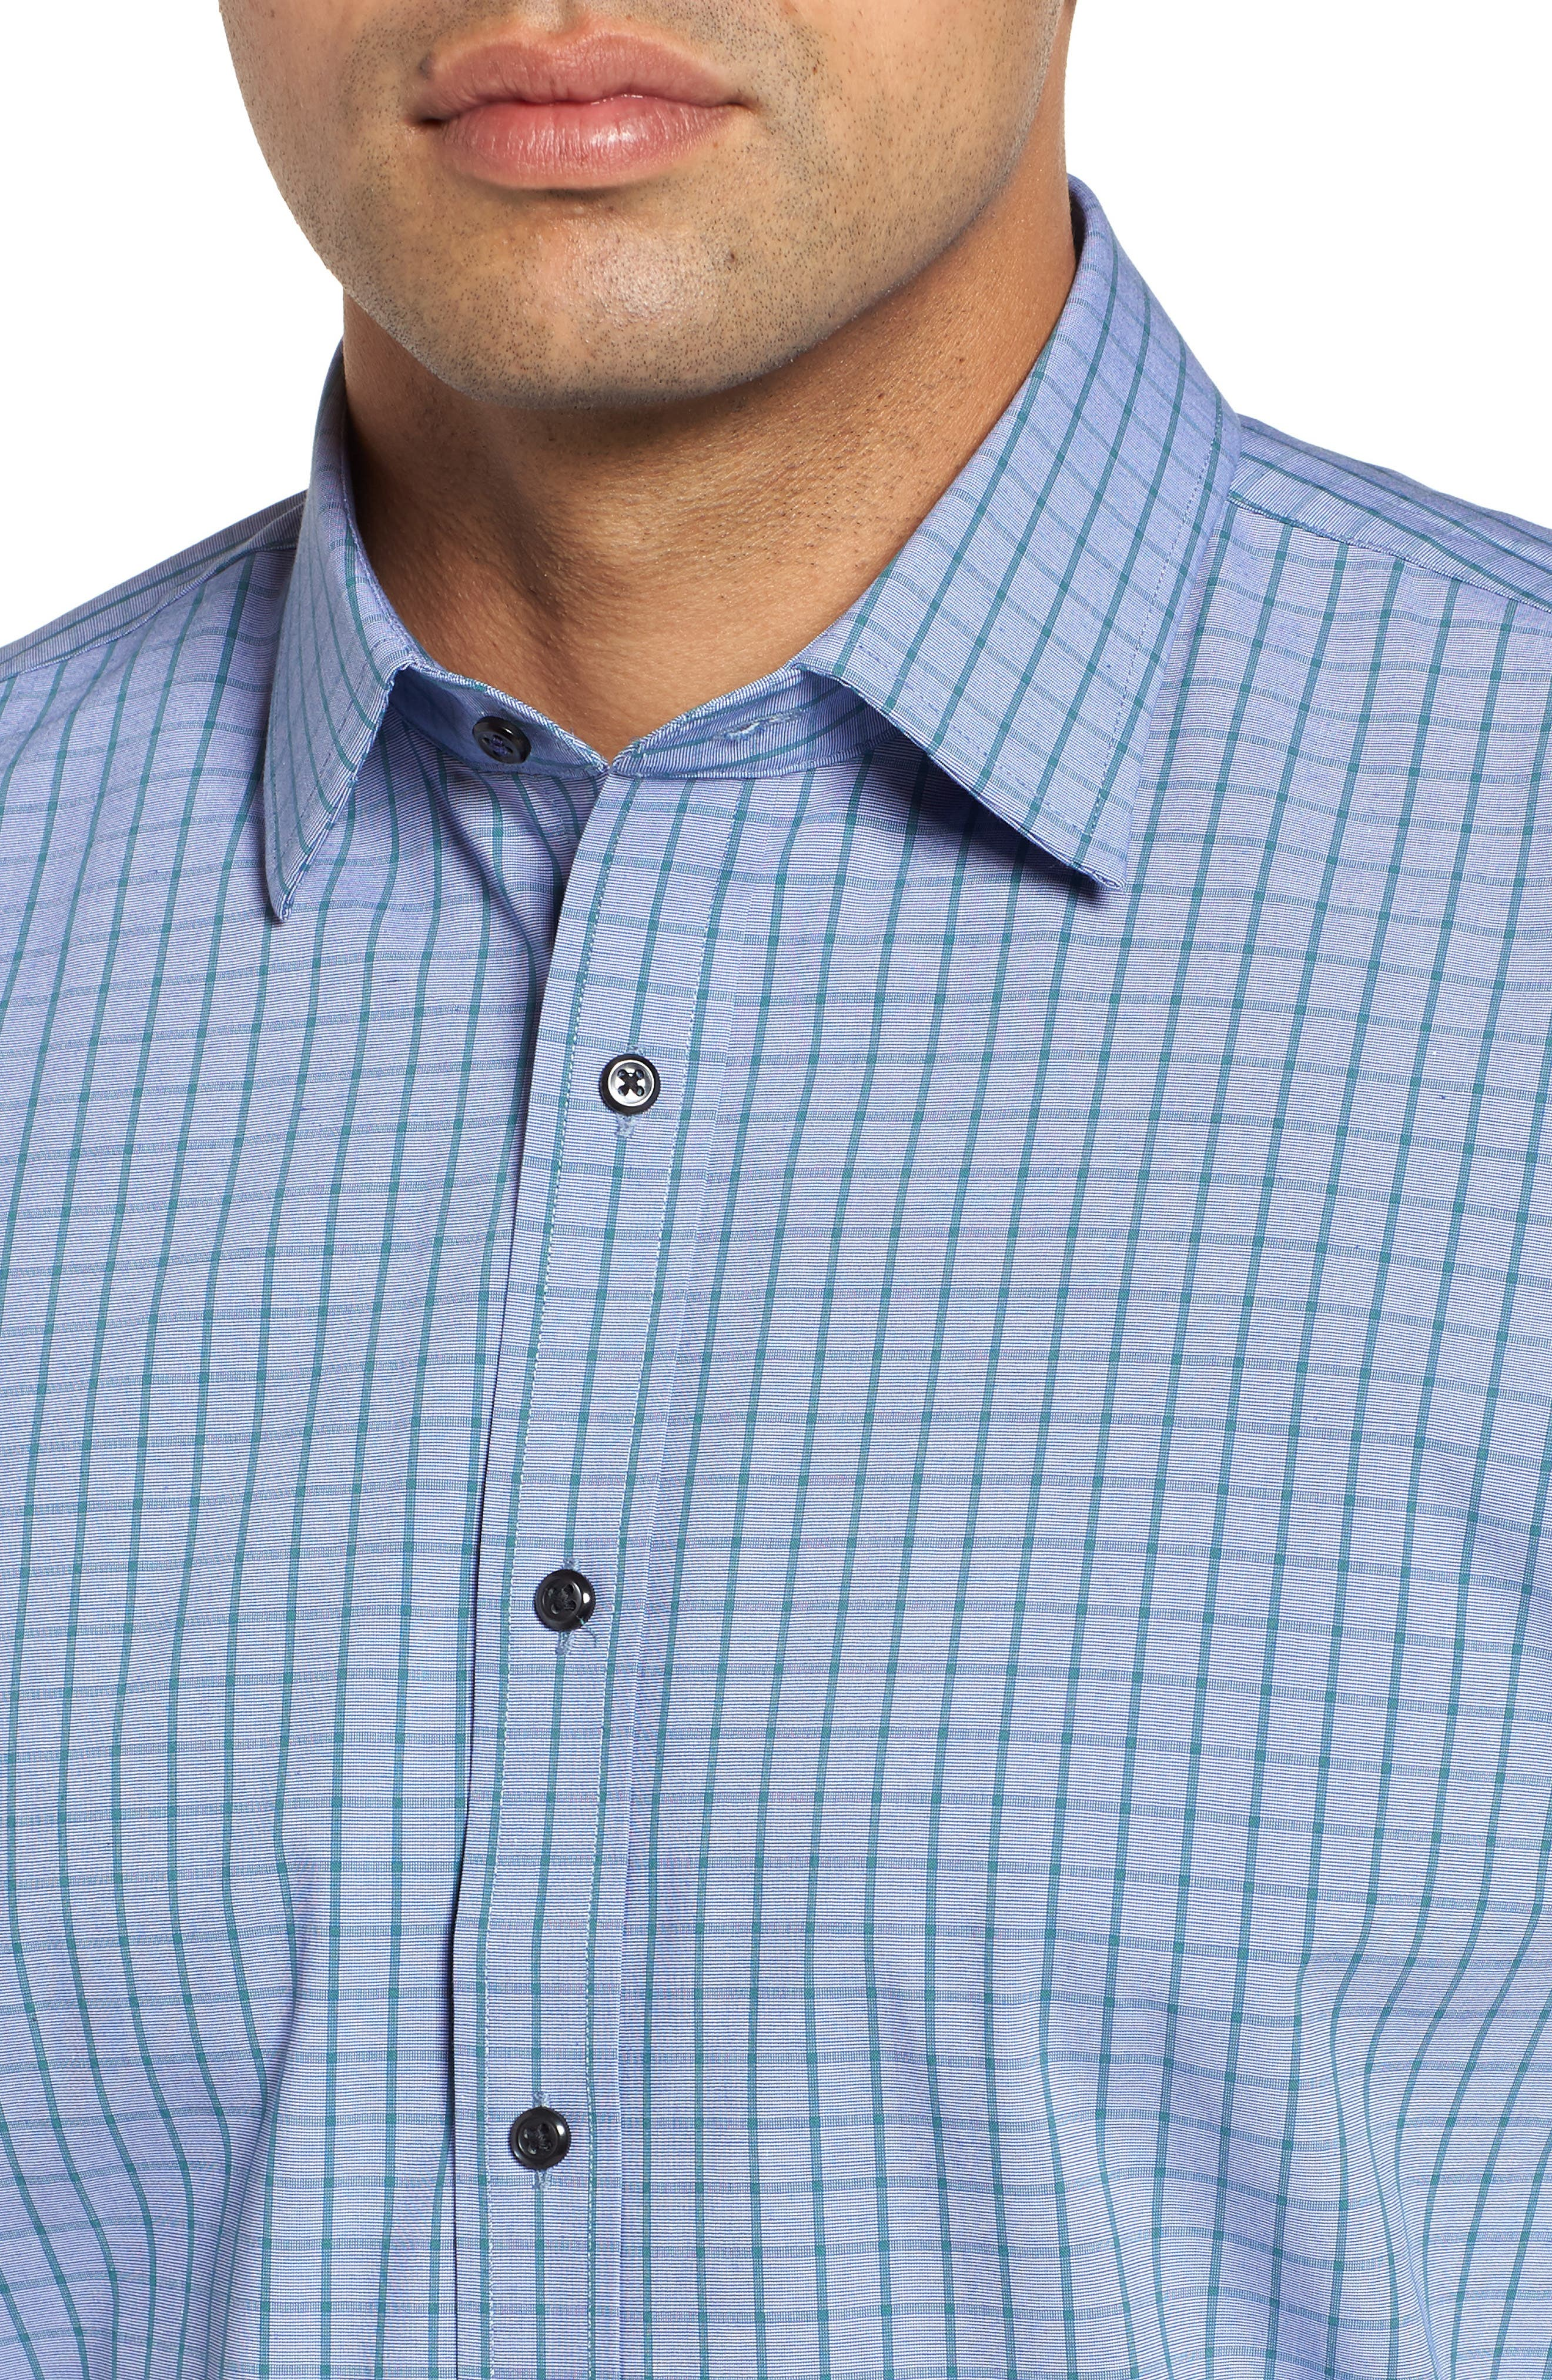 Tech-Smart Traditional Fit Stretch Check Dress Shirt,                             Alternate thumbnail 2, color,                             440